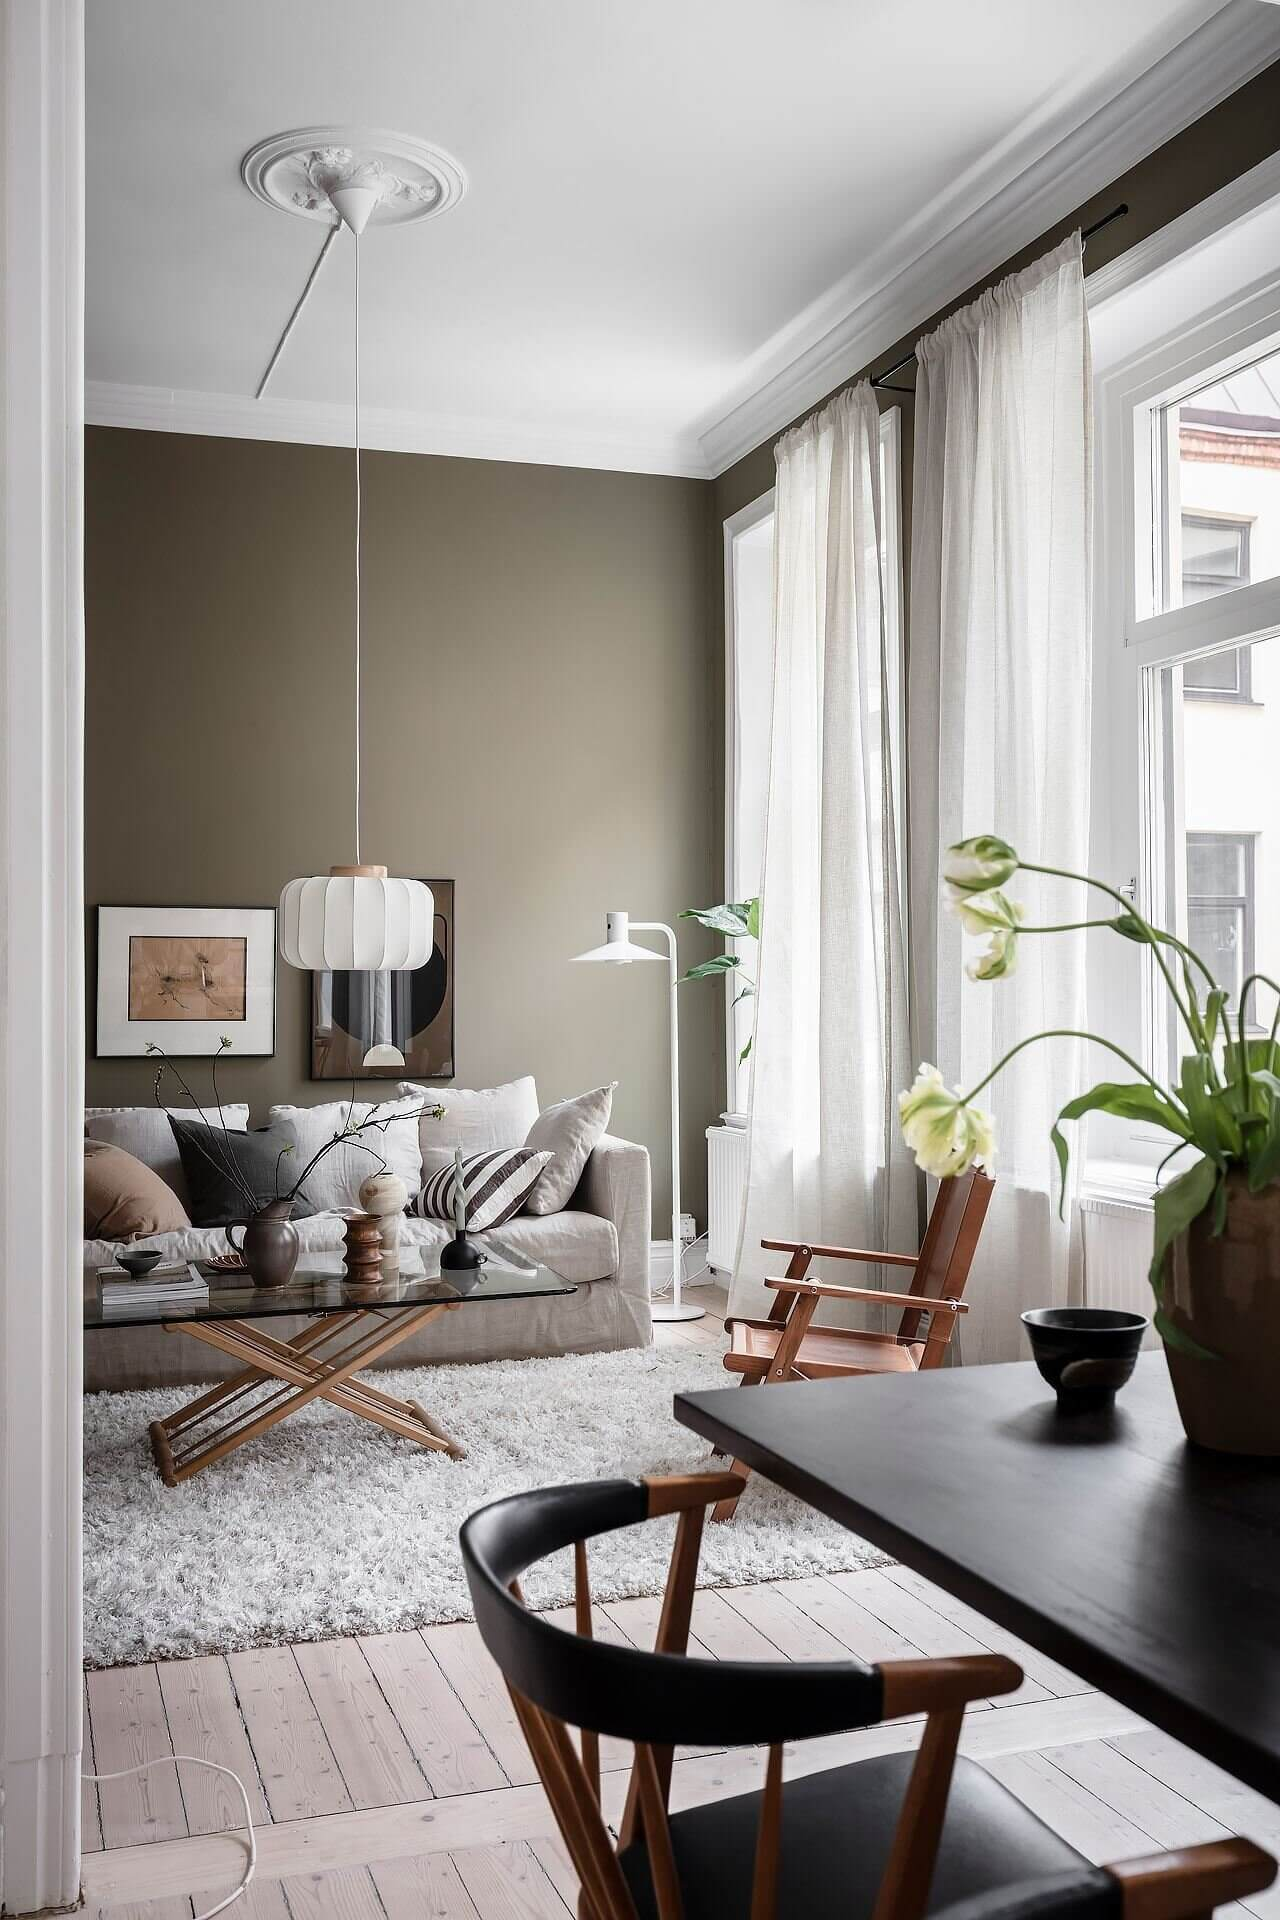 A Scandinavian Apartment With Olive Green Walls